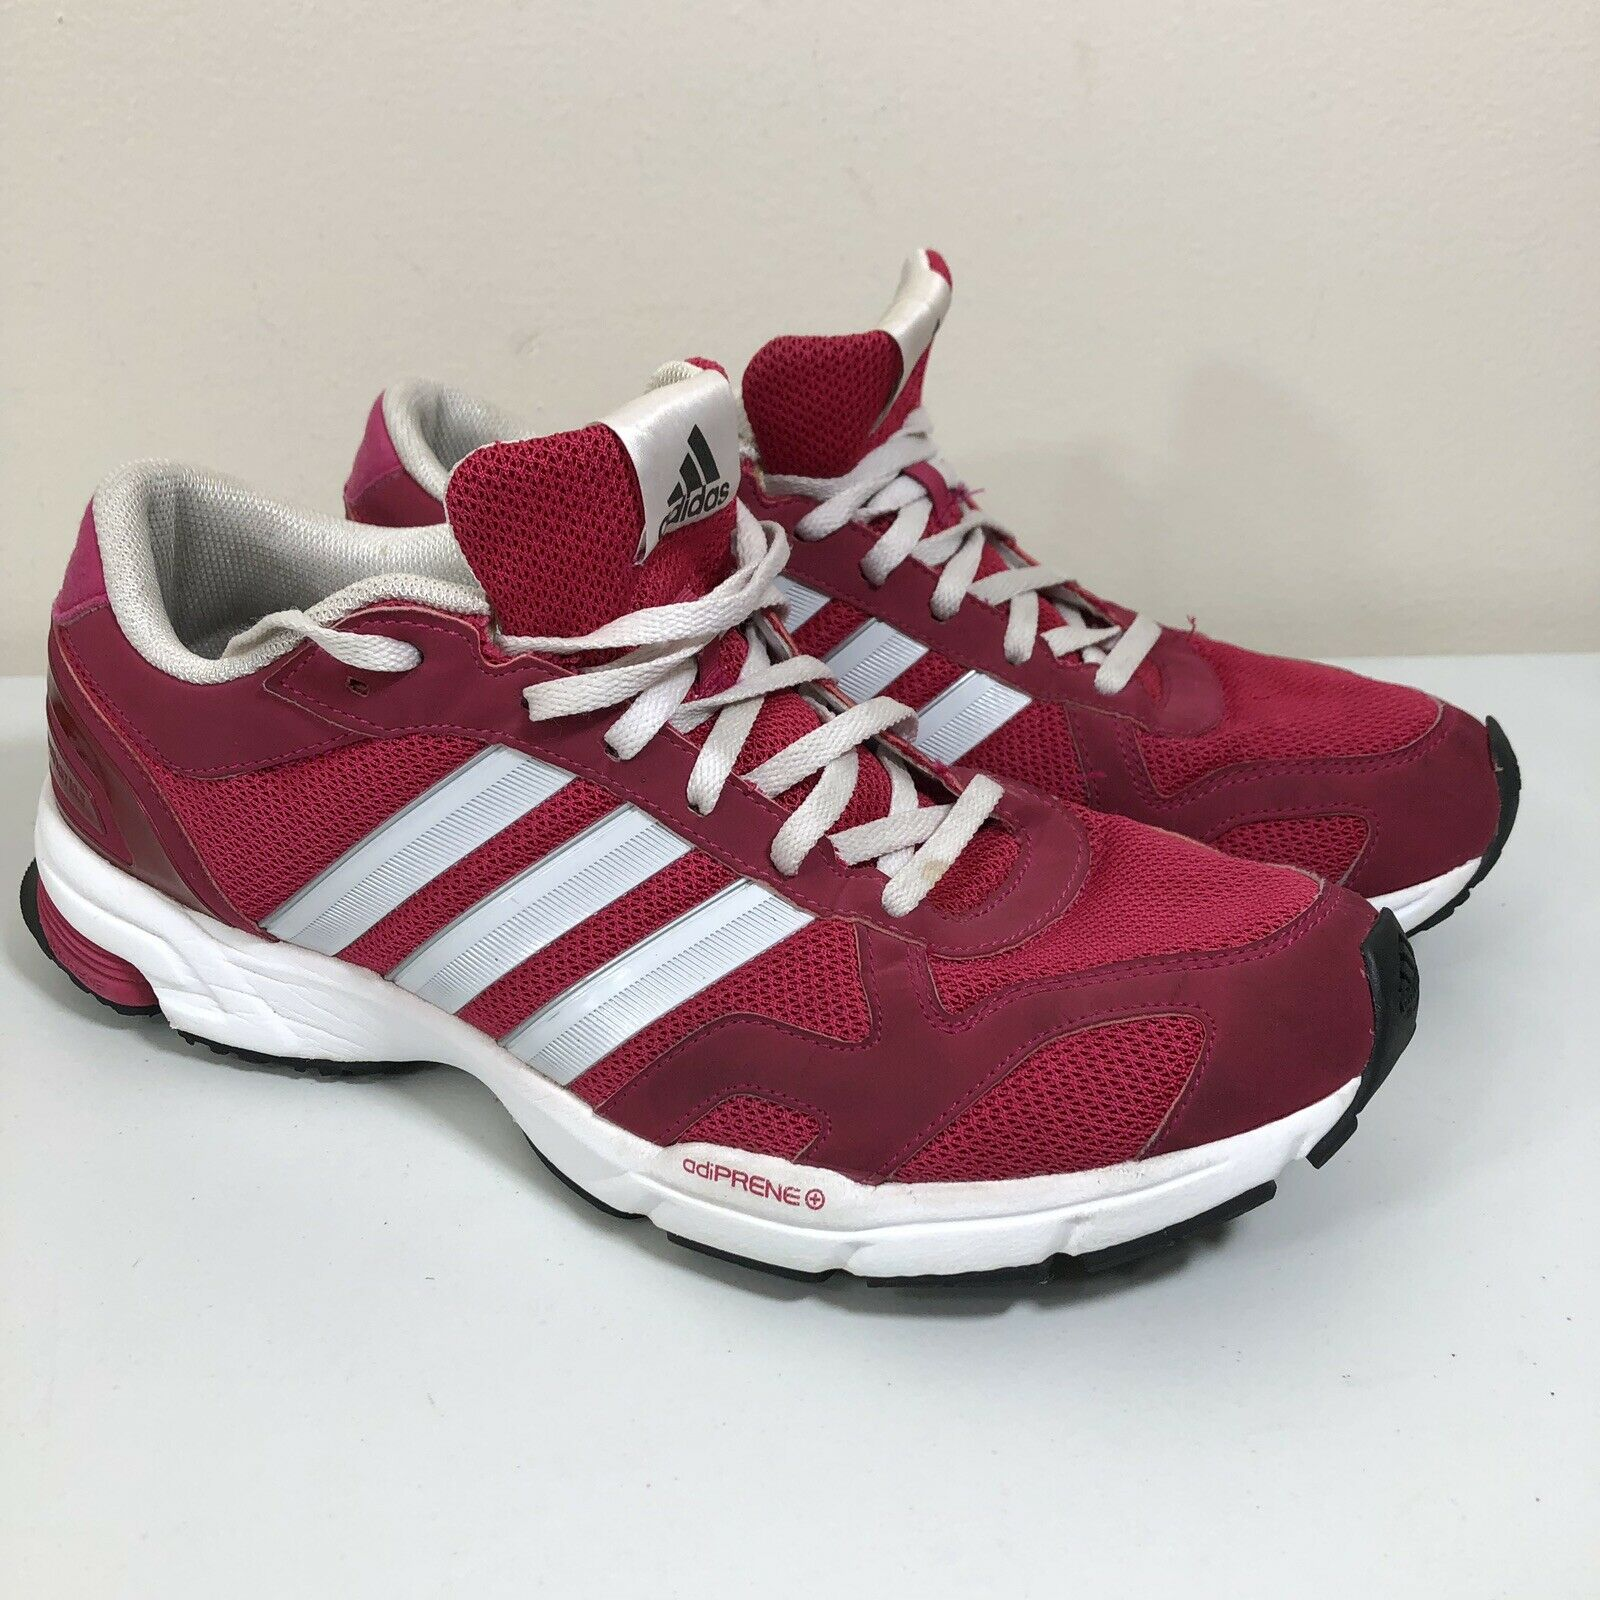 Men's Adidas PINK Tennis shoes Aktiv Against Cancer Size 10 Running Sneakers